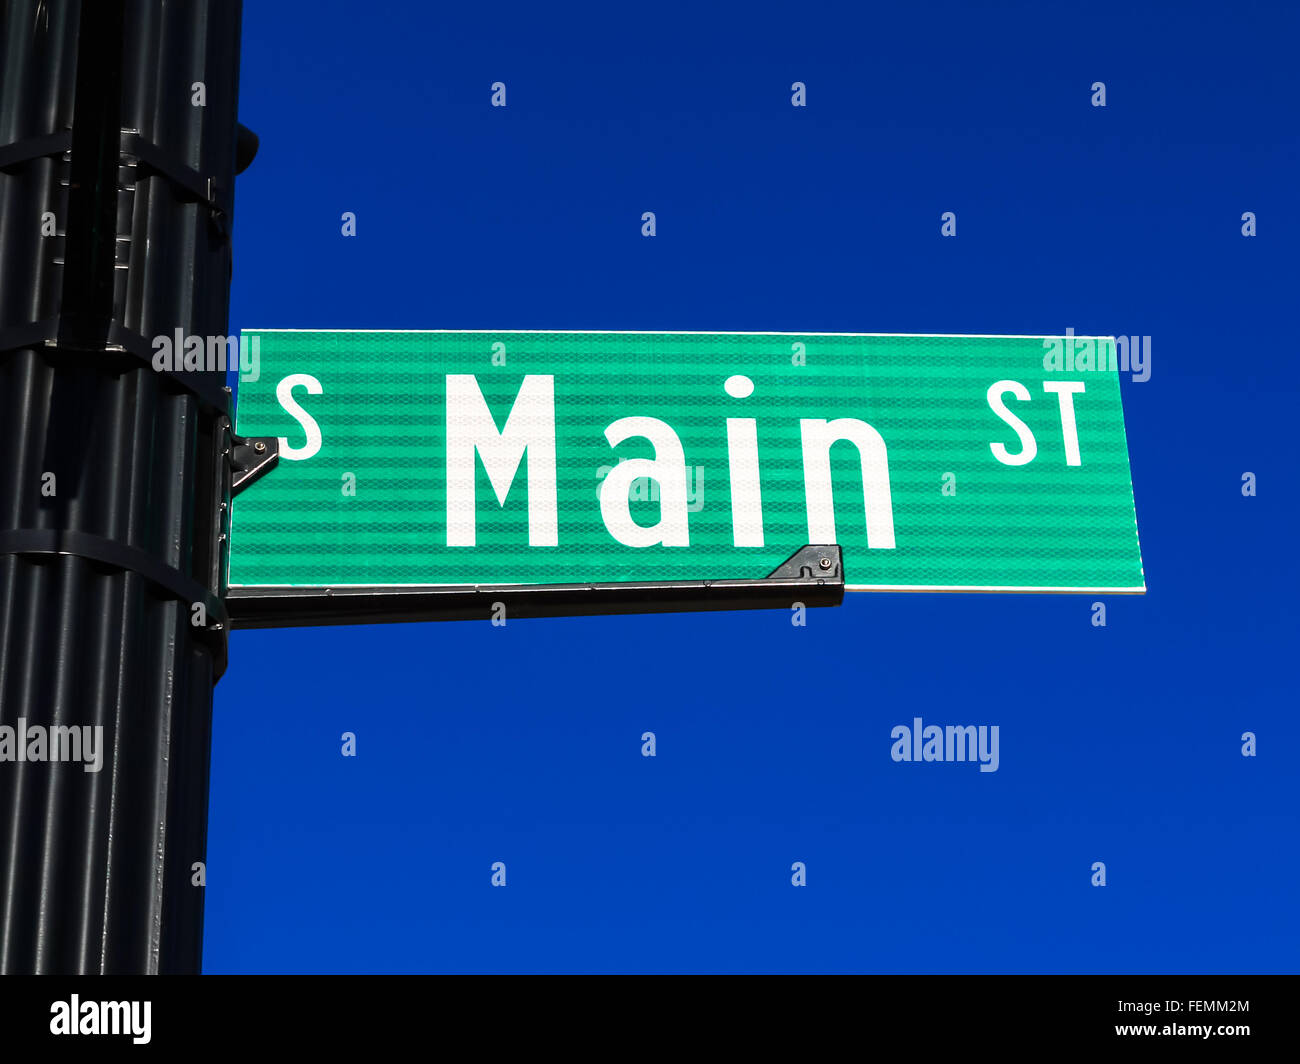 Main Street sign on a street pole. - Stock Image